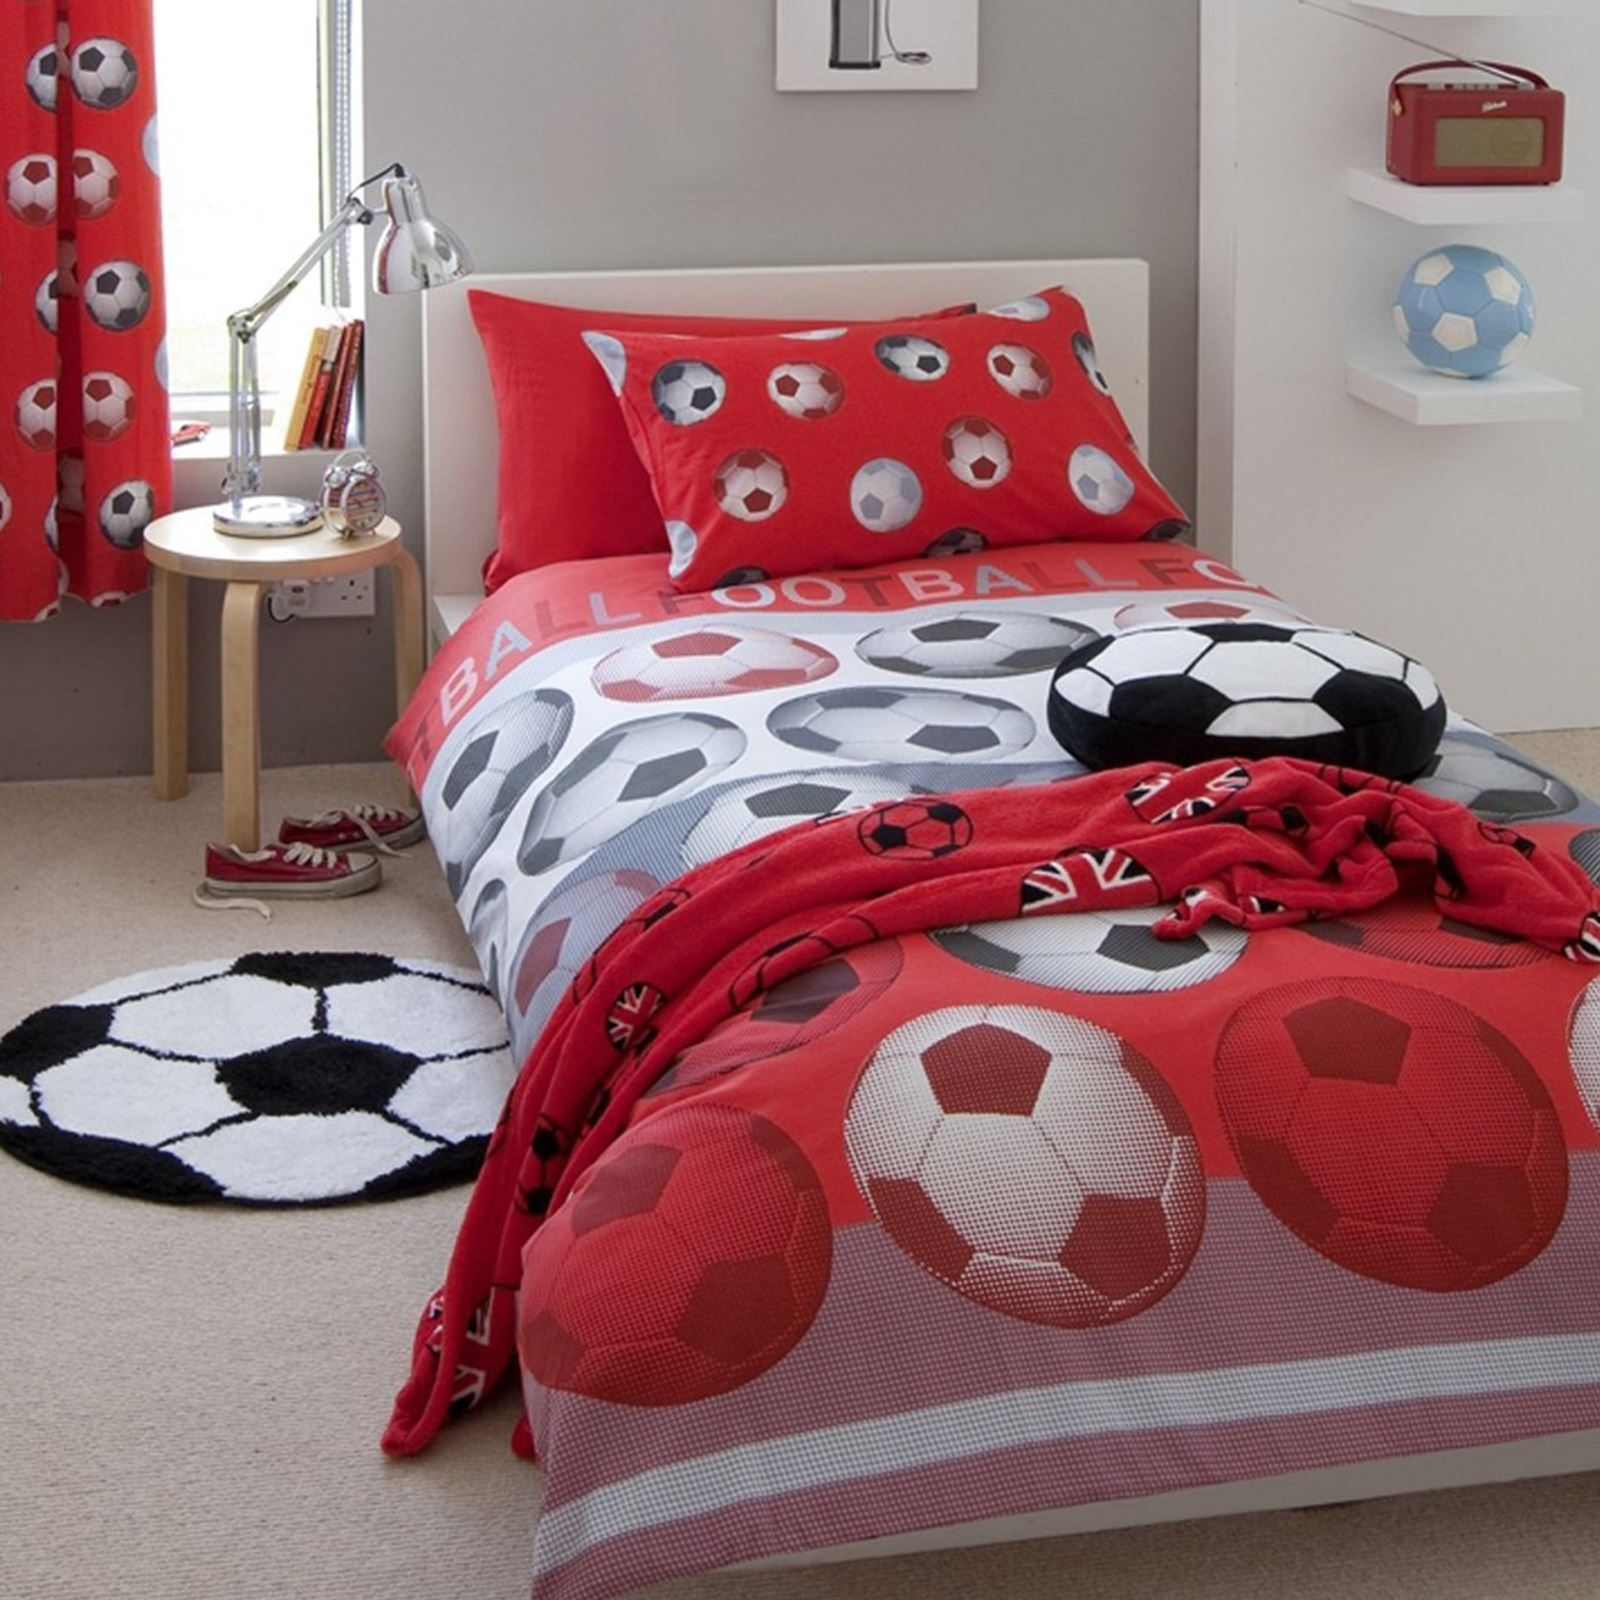 lavish chloe quilt home set pdx wayfair bed embroidered in bath red duvet reviews